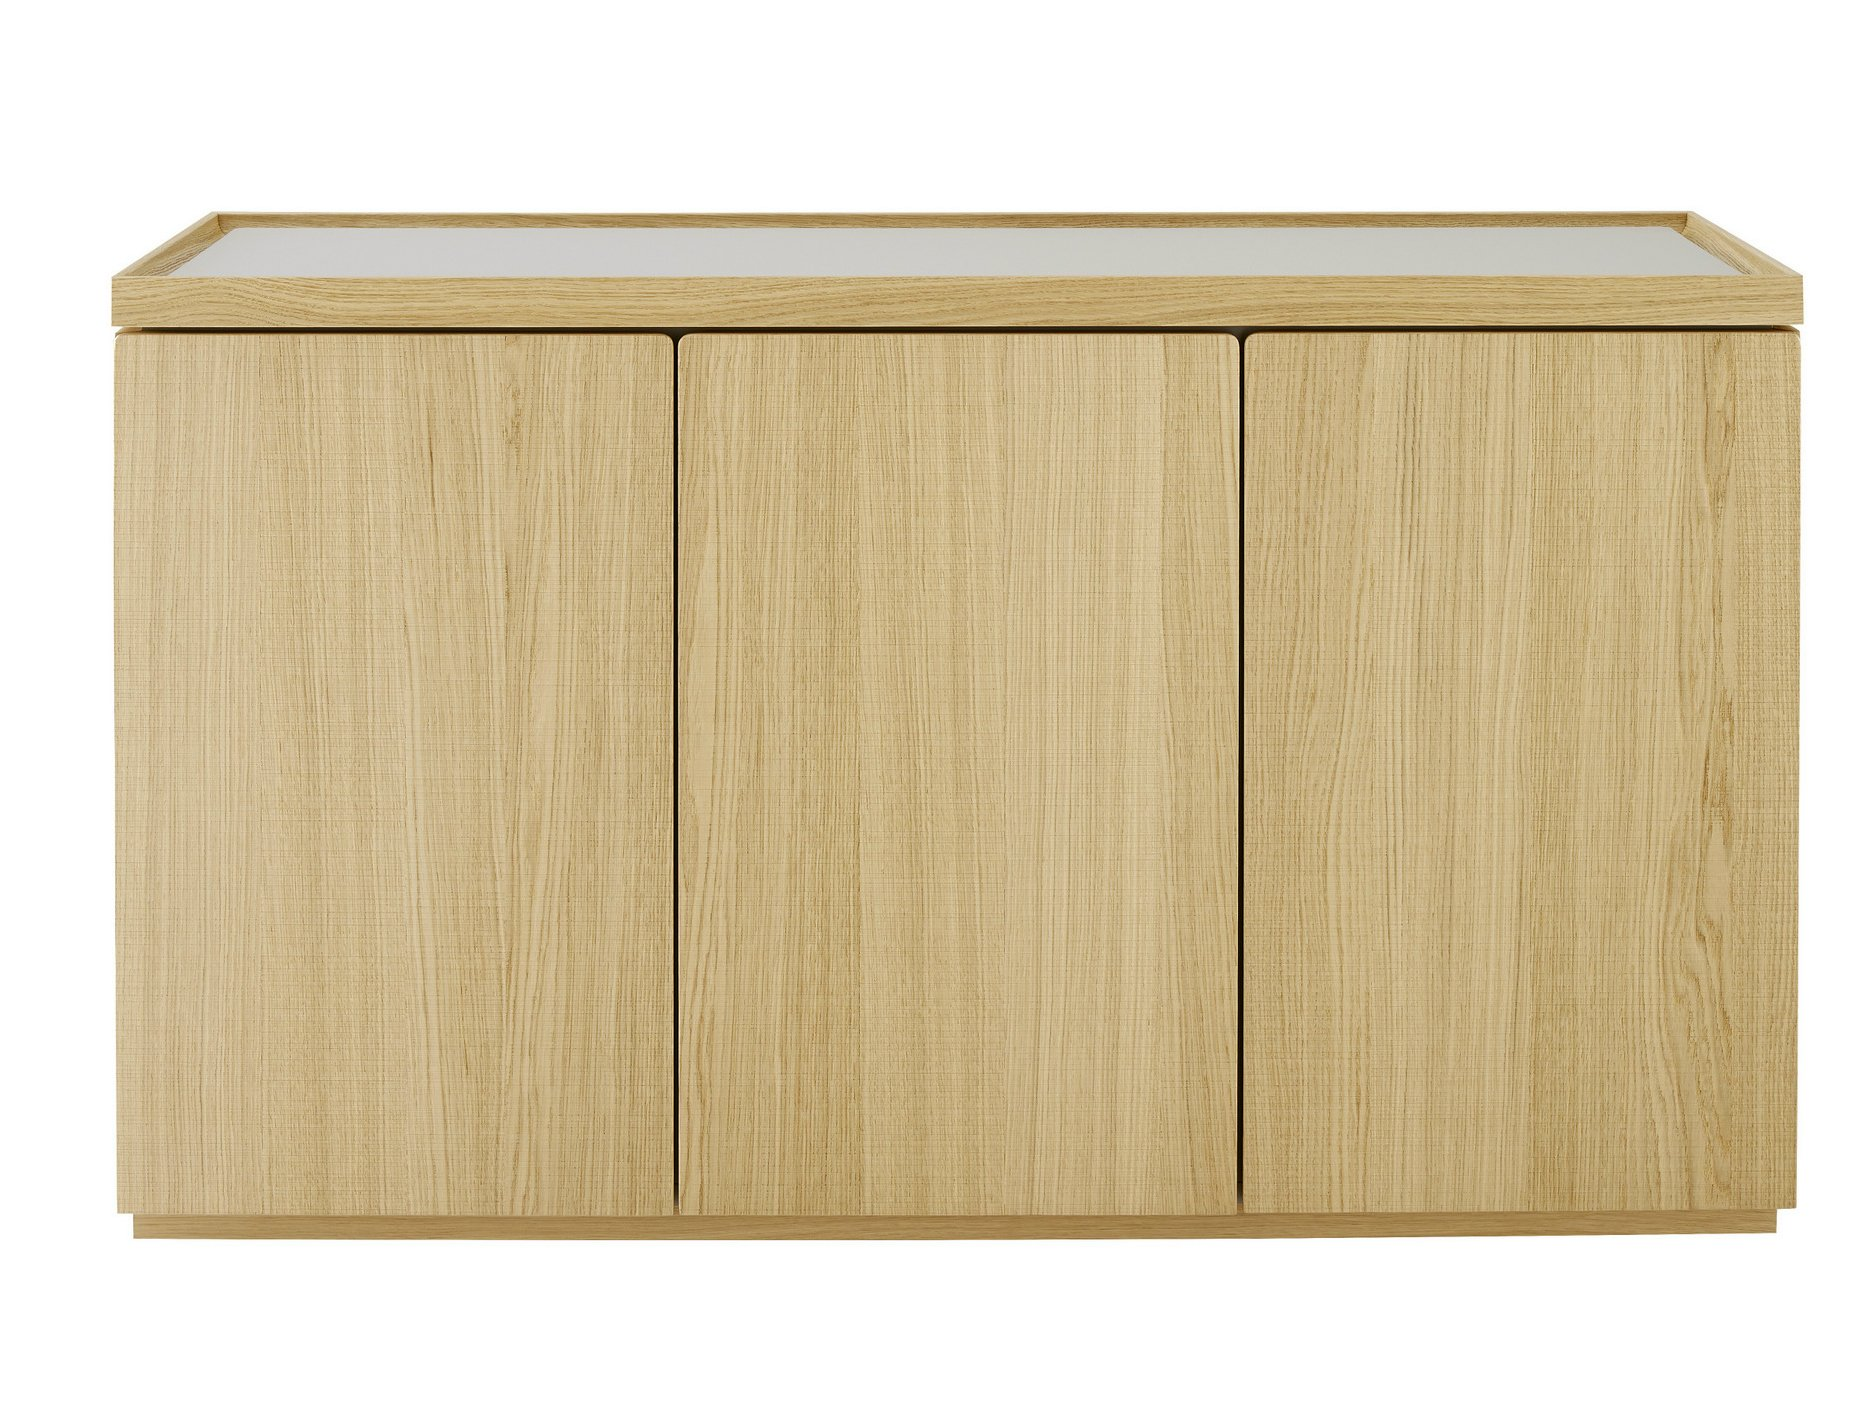 estampe oak sideboard by ligne roset design no duchaufour lawrance. Black Bedroom Furniture Sets. Home Design Ideas